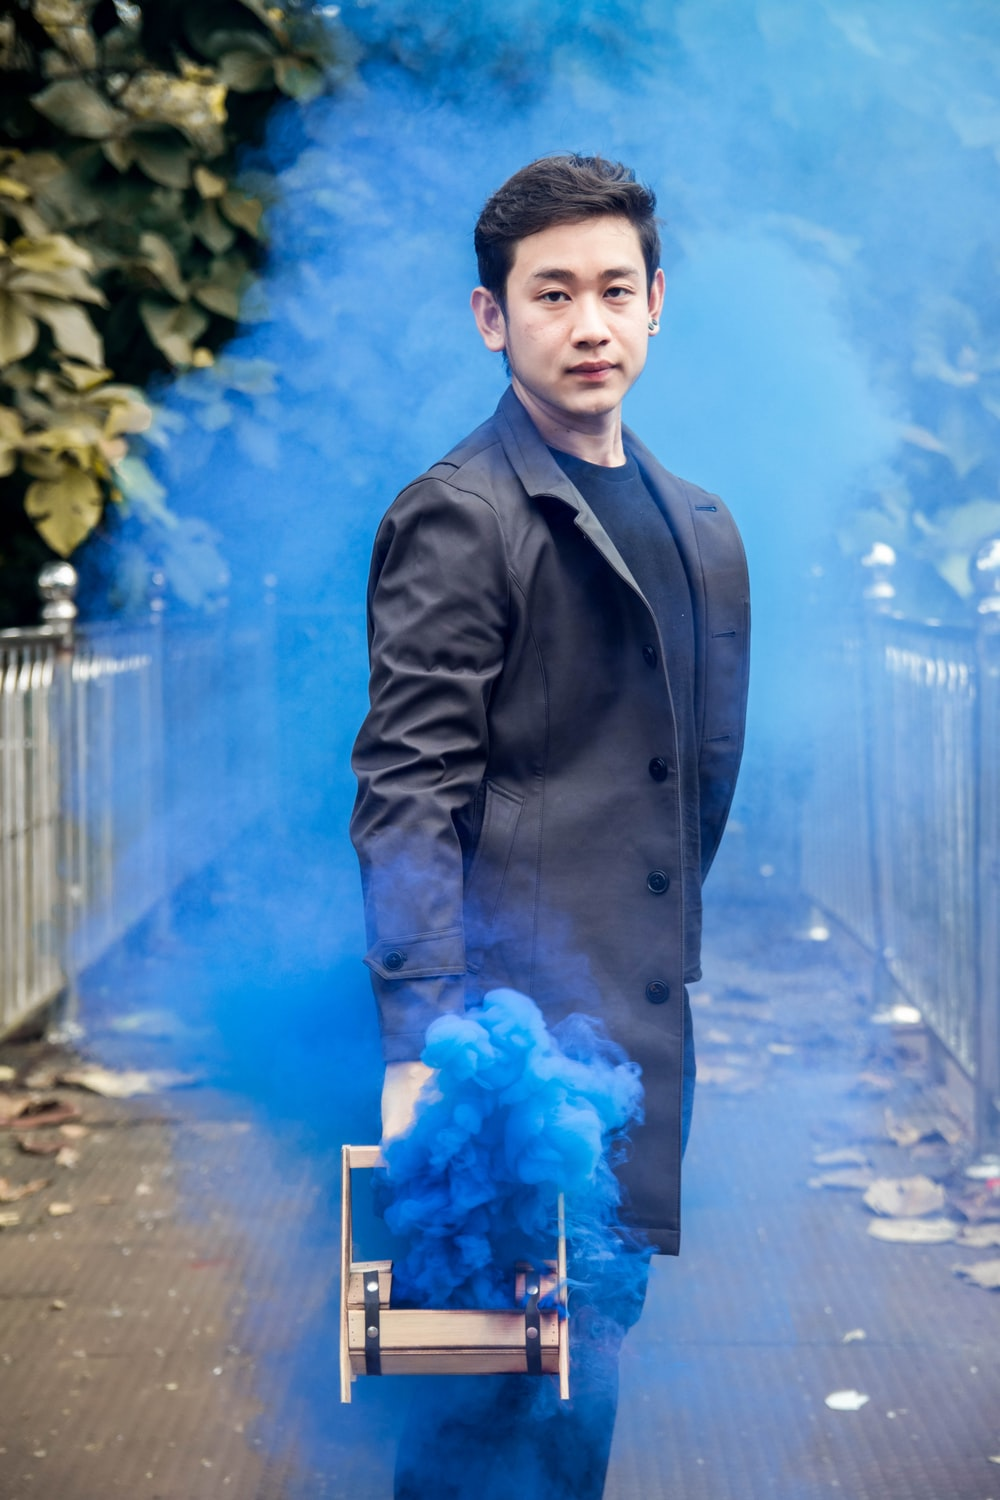 man in gray coat holding machine emitting blue smoke